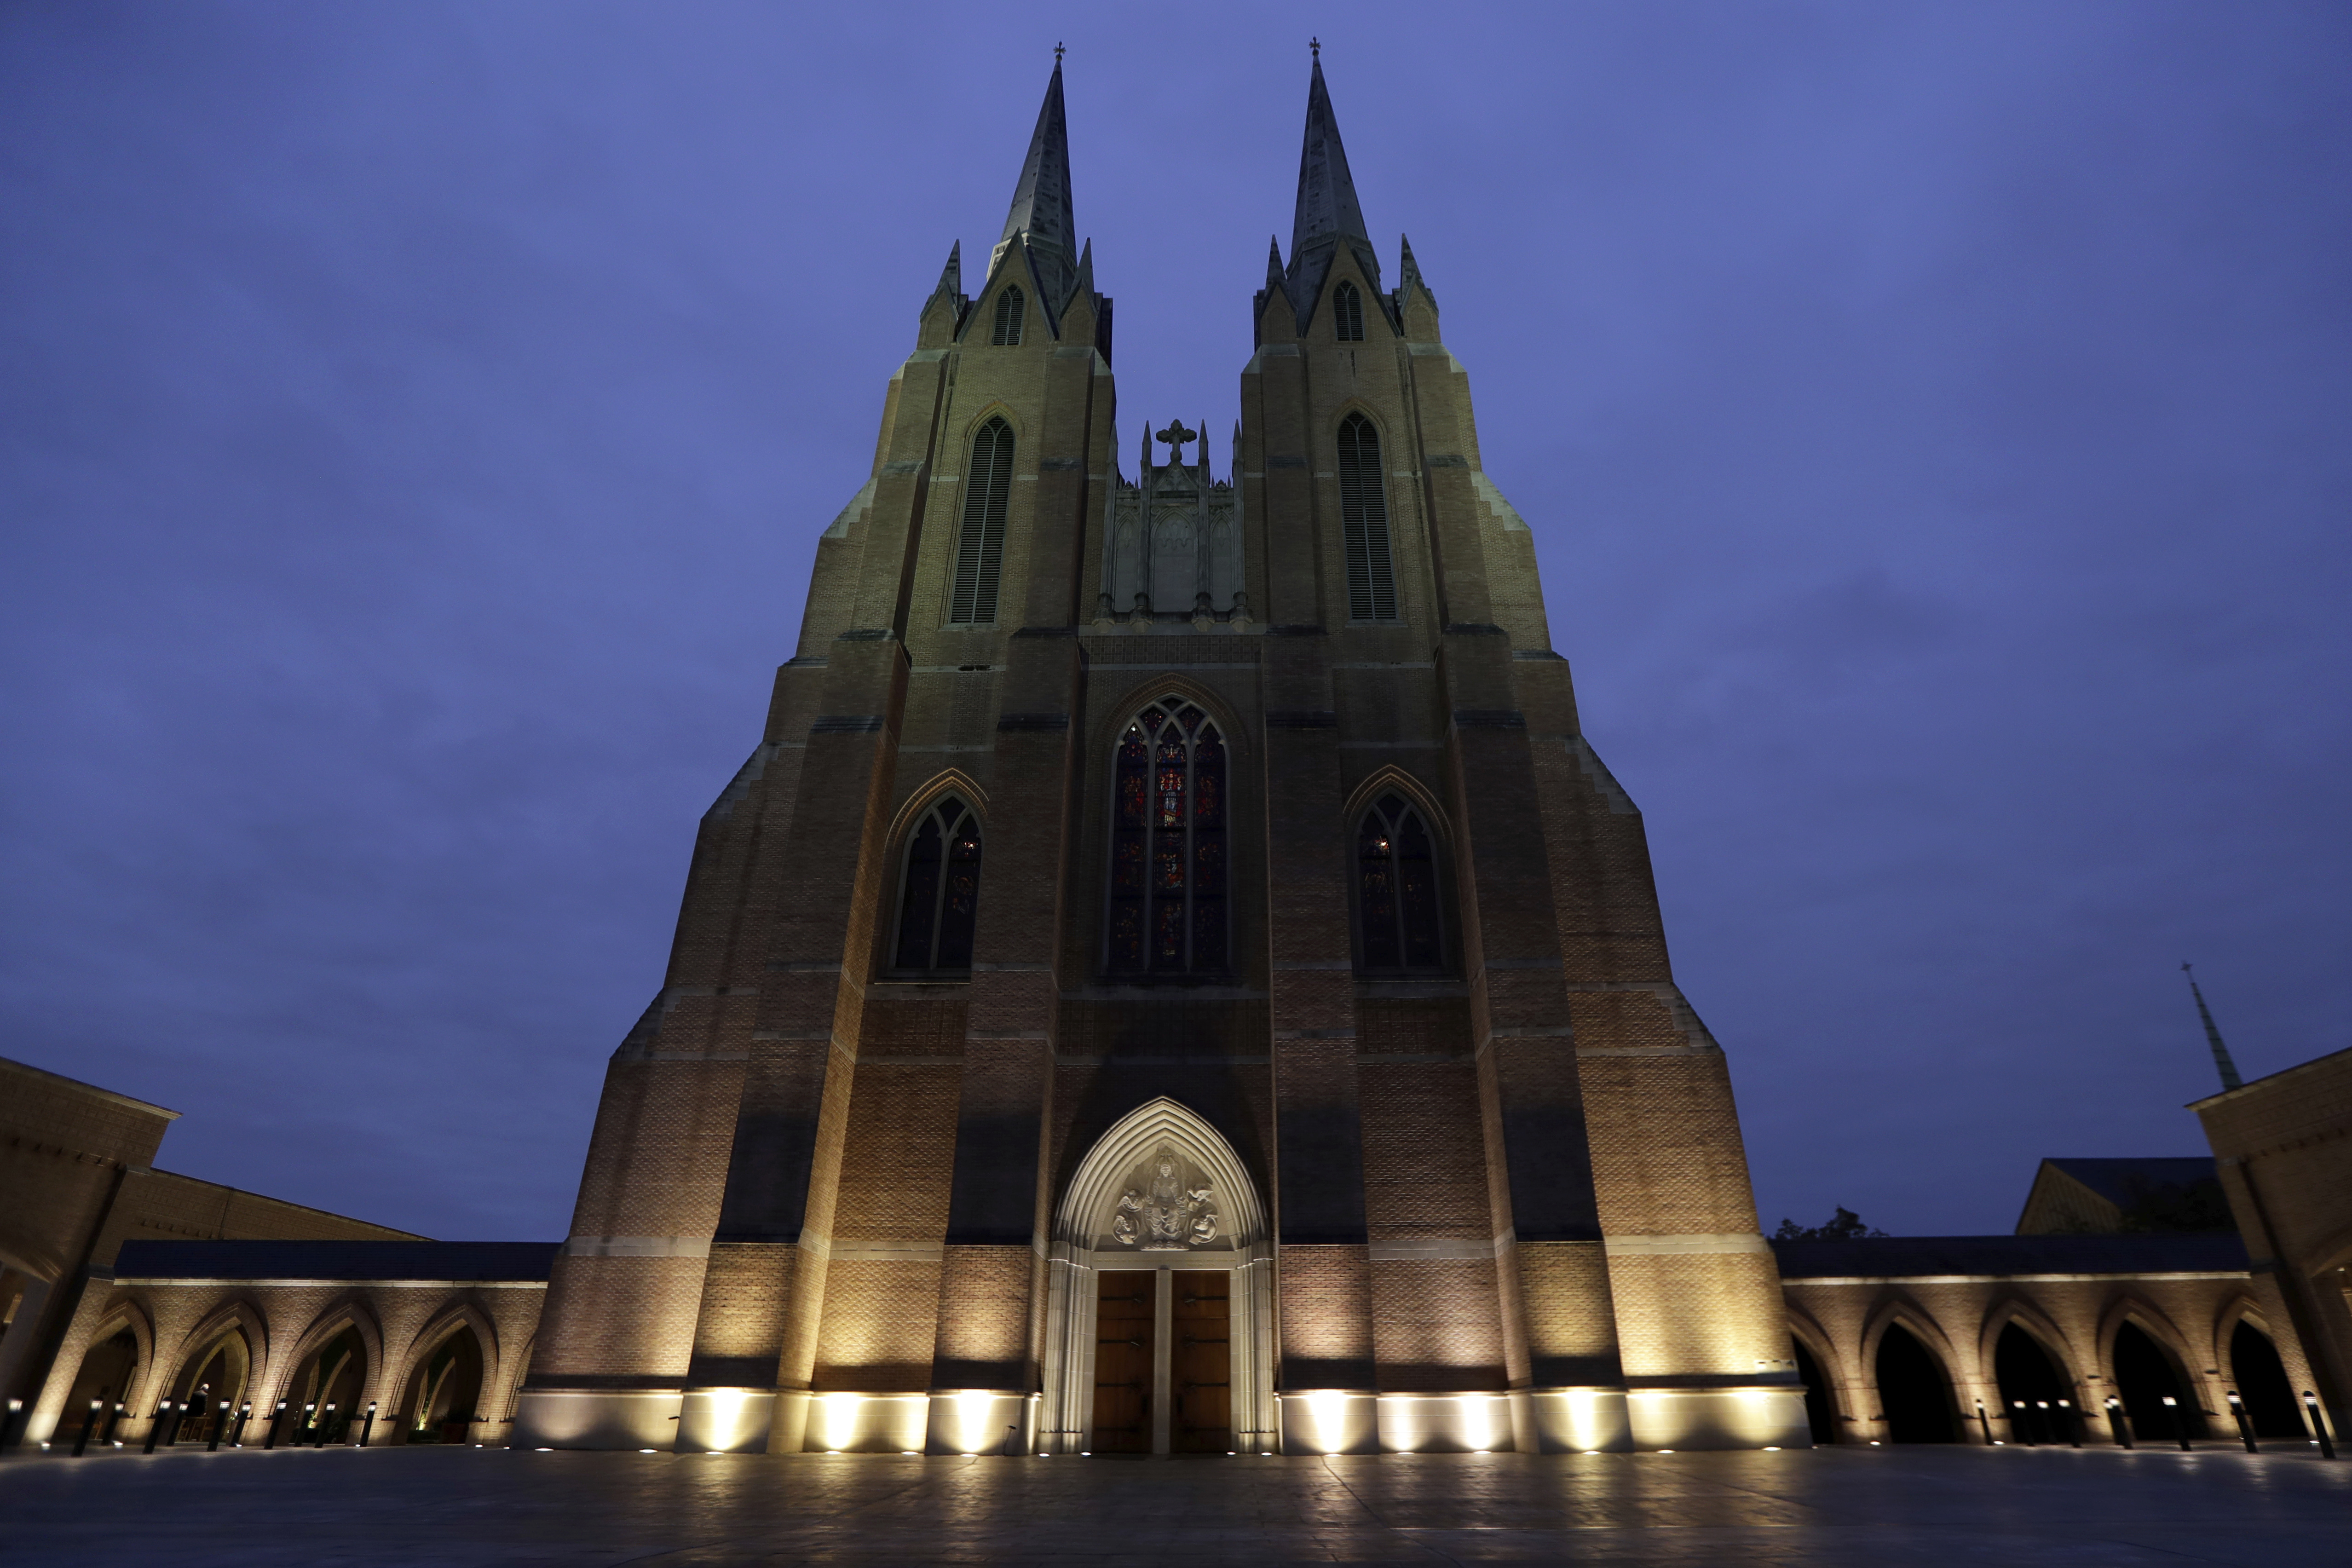 St. Martin's Episcopal Church awaits for the State Funeral for former President George H.W. Bush Thursday, Dec. 6, 2018, in Houston. (AP Photo/Mark Humphrey)